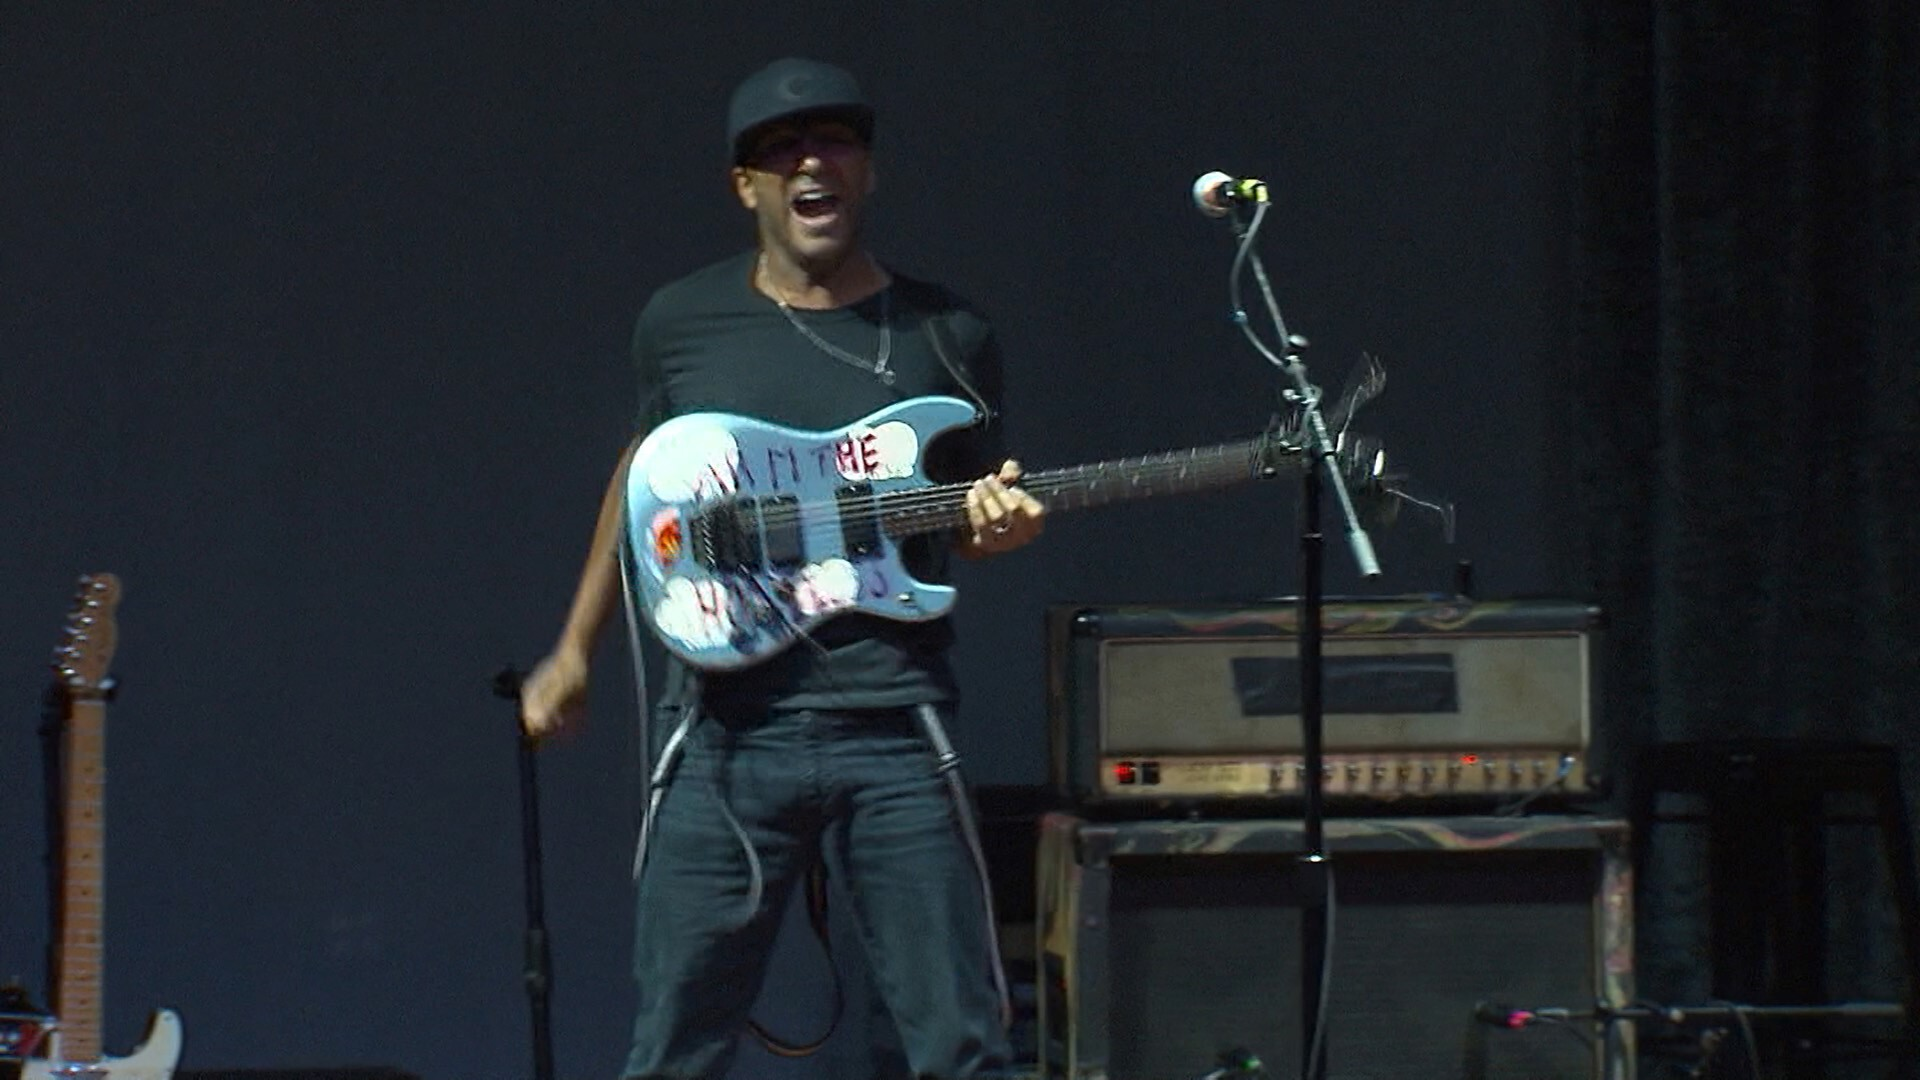 Rage Against the Machine's Tom Morello seeking help to get female guitar students out of Afghanistan